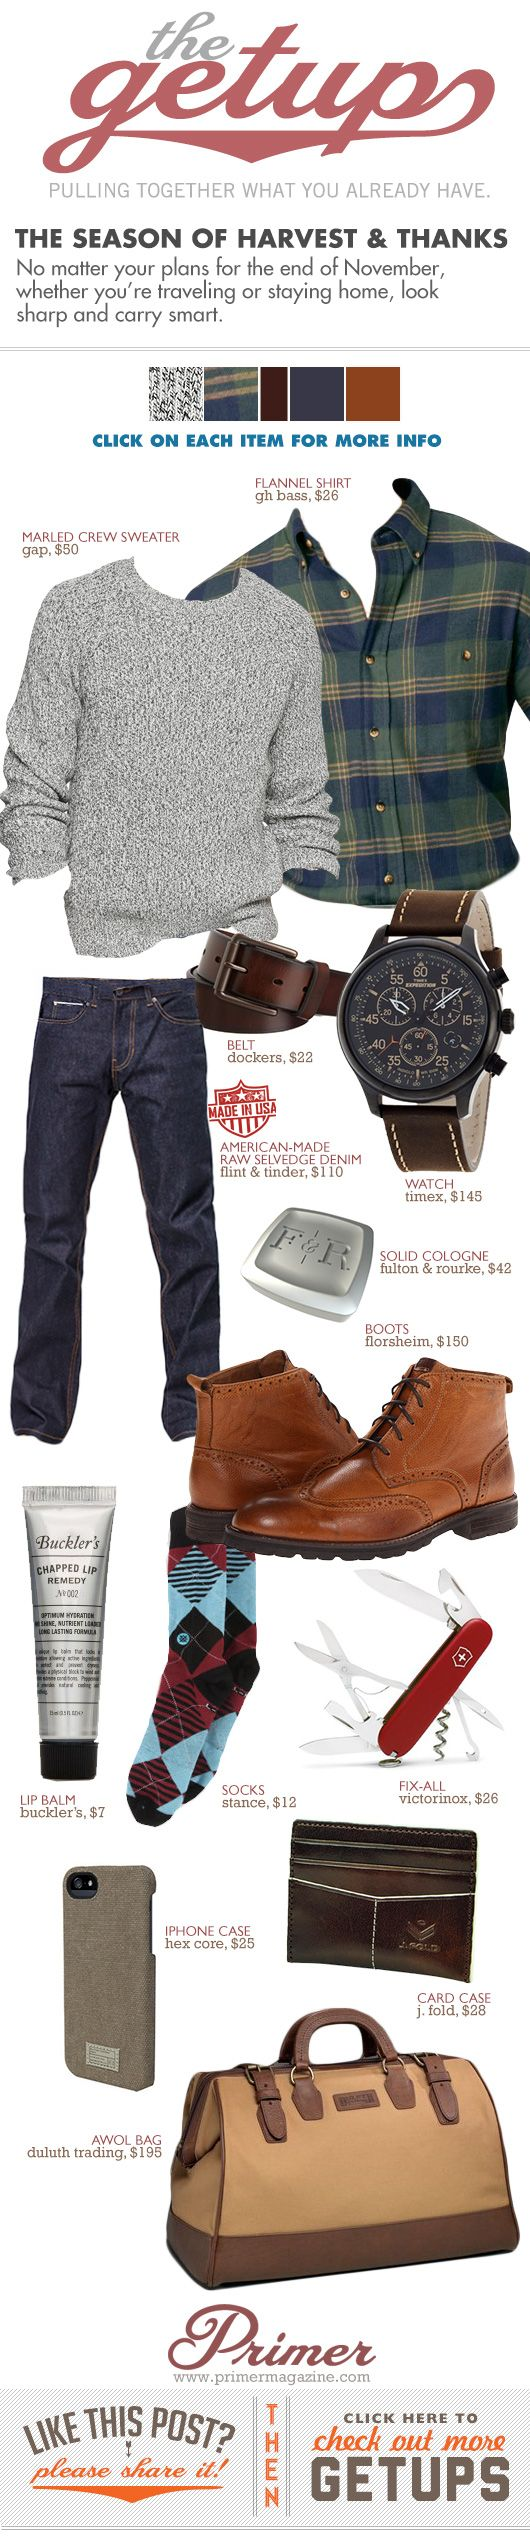 I could use you in this right now //.The Getup: The Season of Harvest & Thanks - Primer #Style minus the gay bag. sorry.